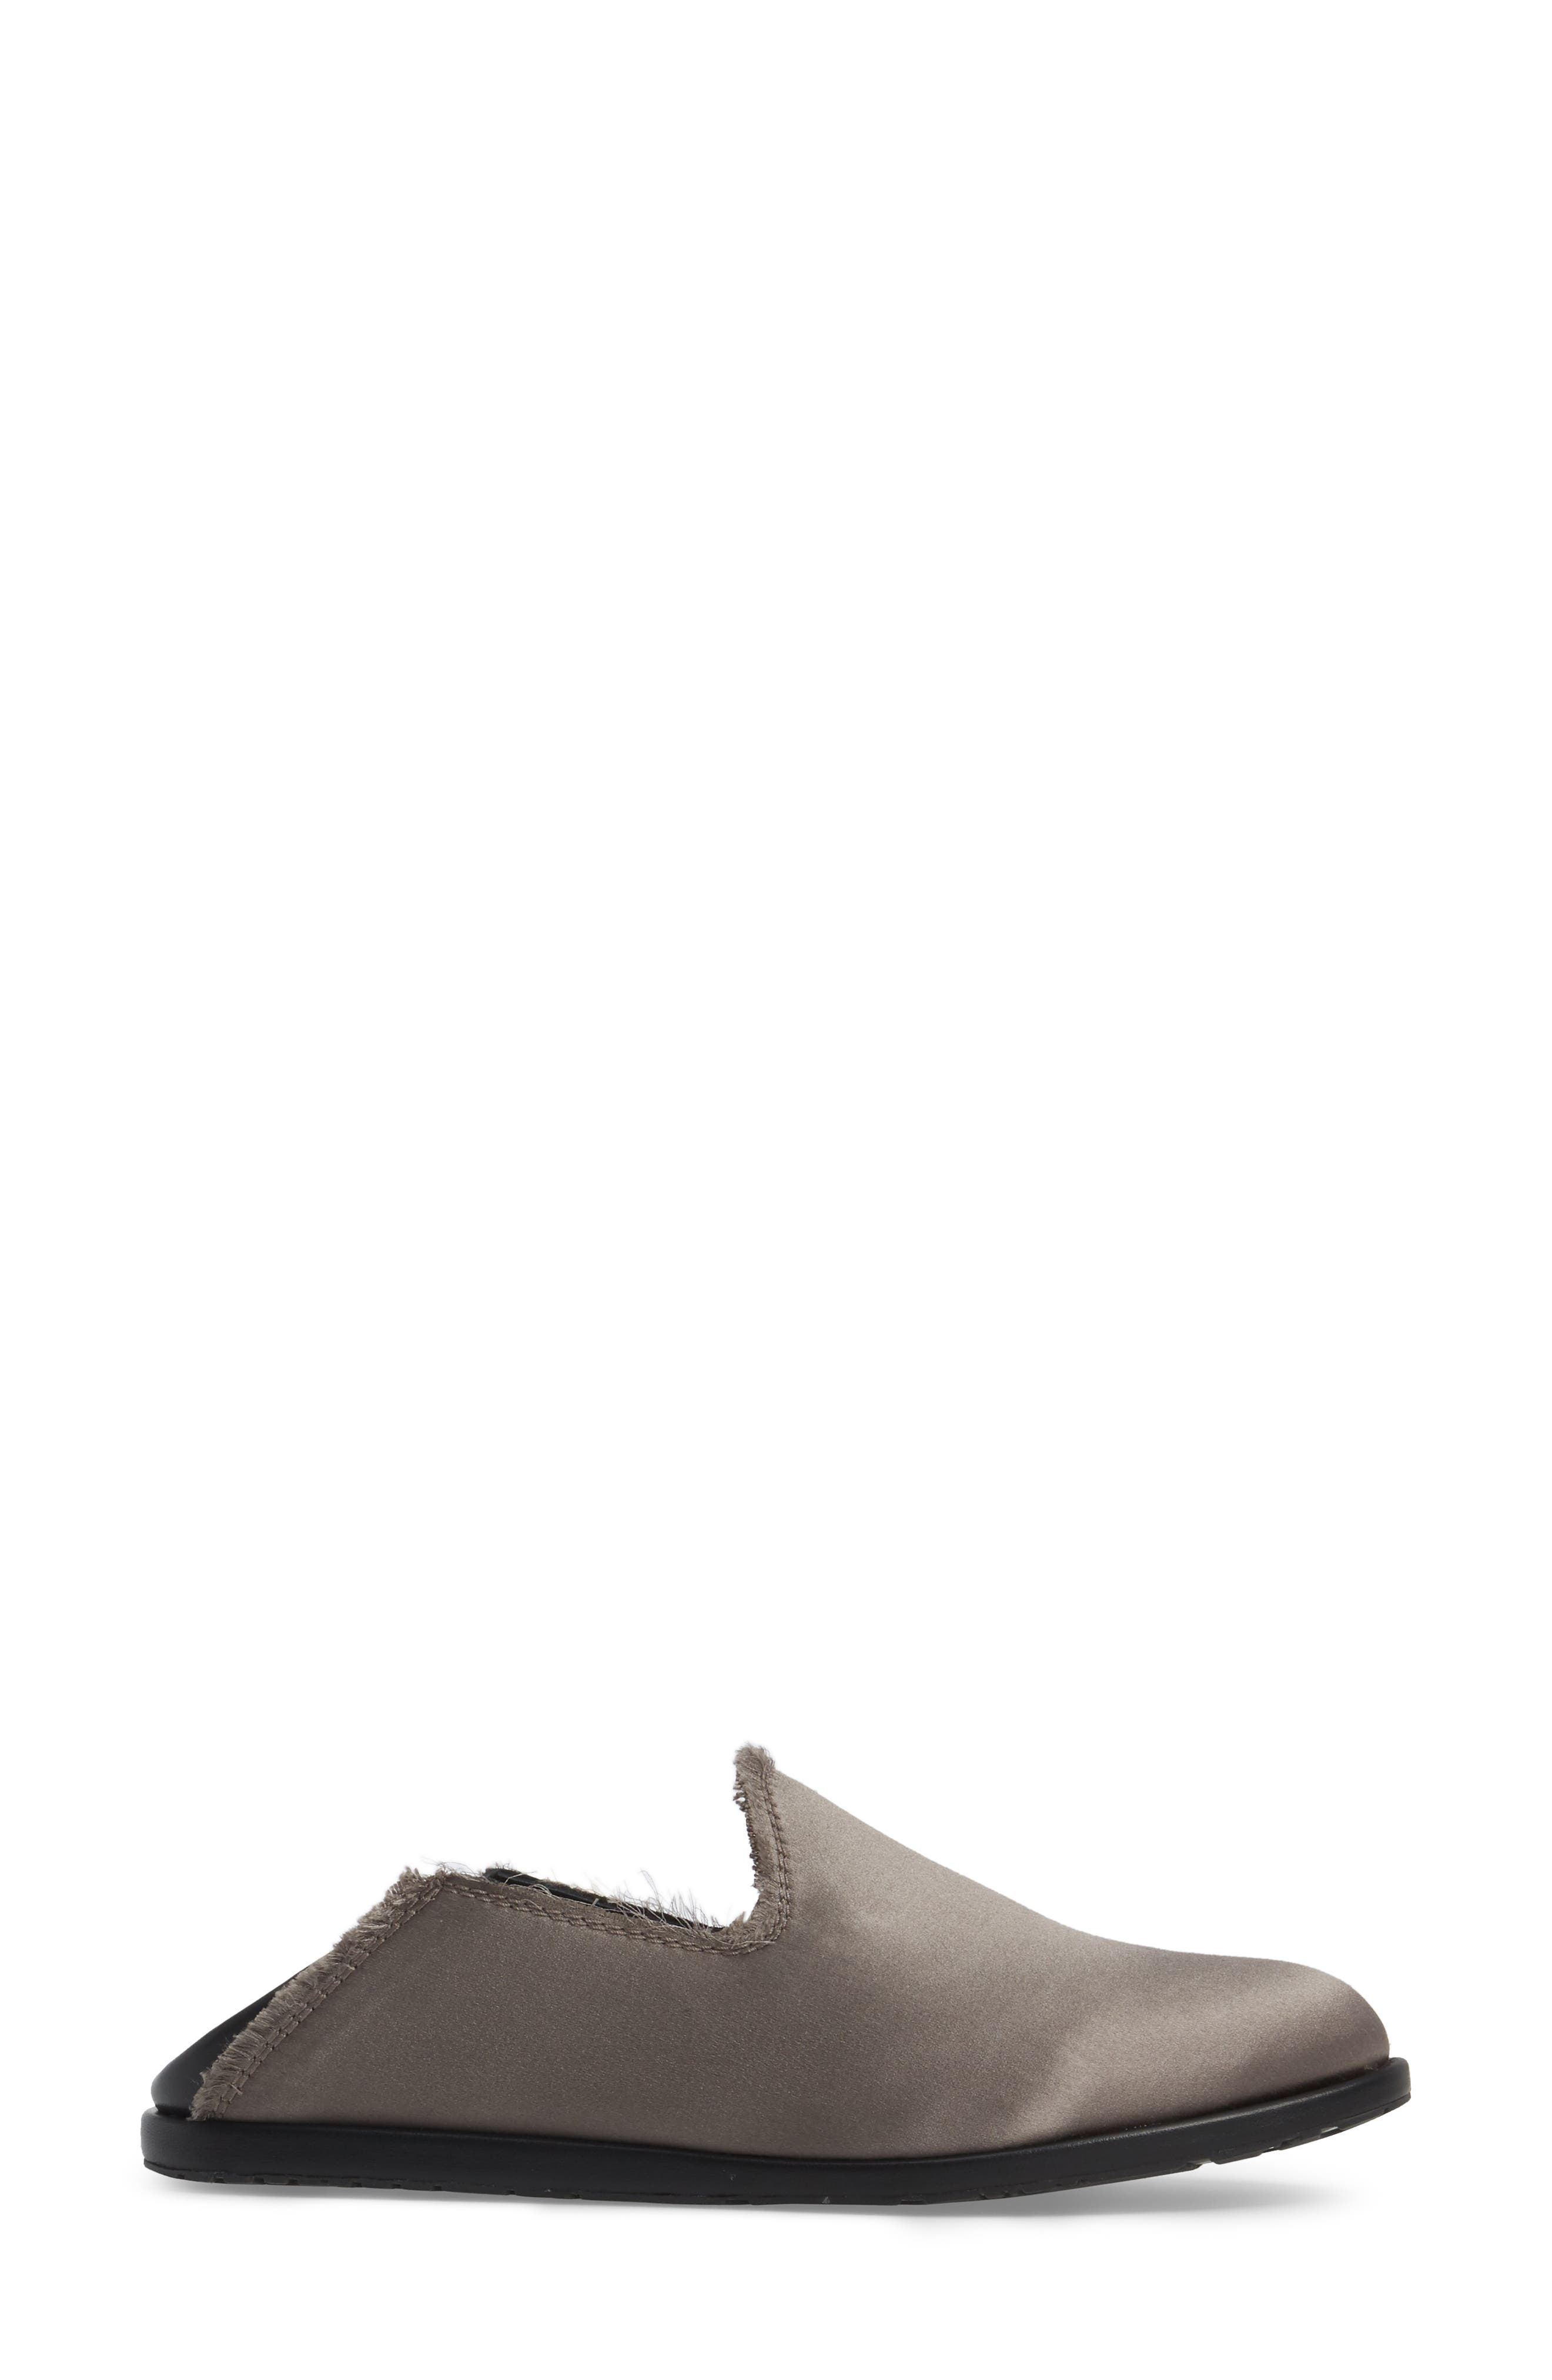 Yamir Convertible Loafer,                             Alternate thumbnail 4, color,                             020